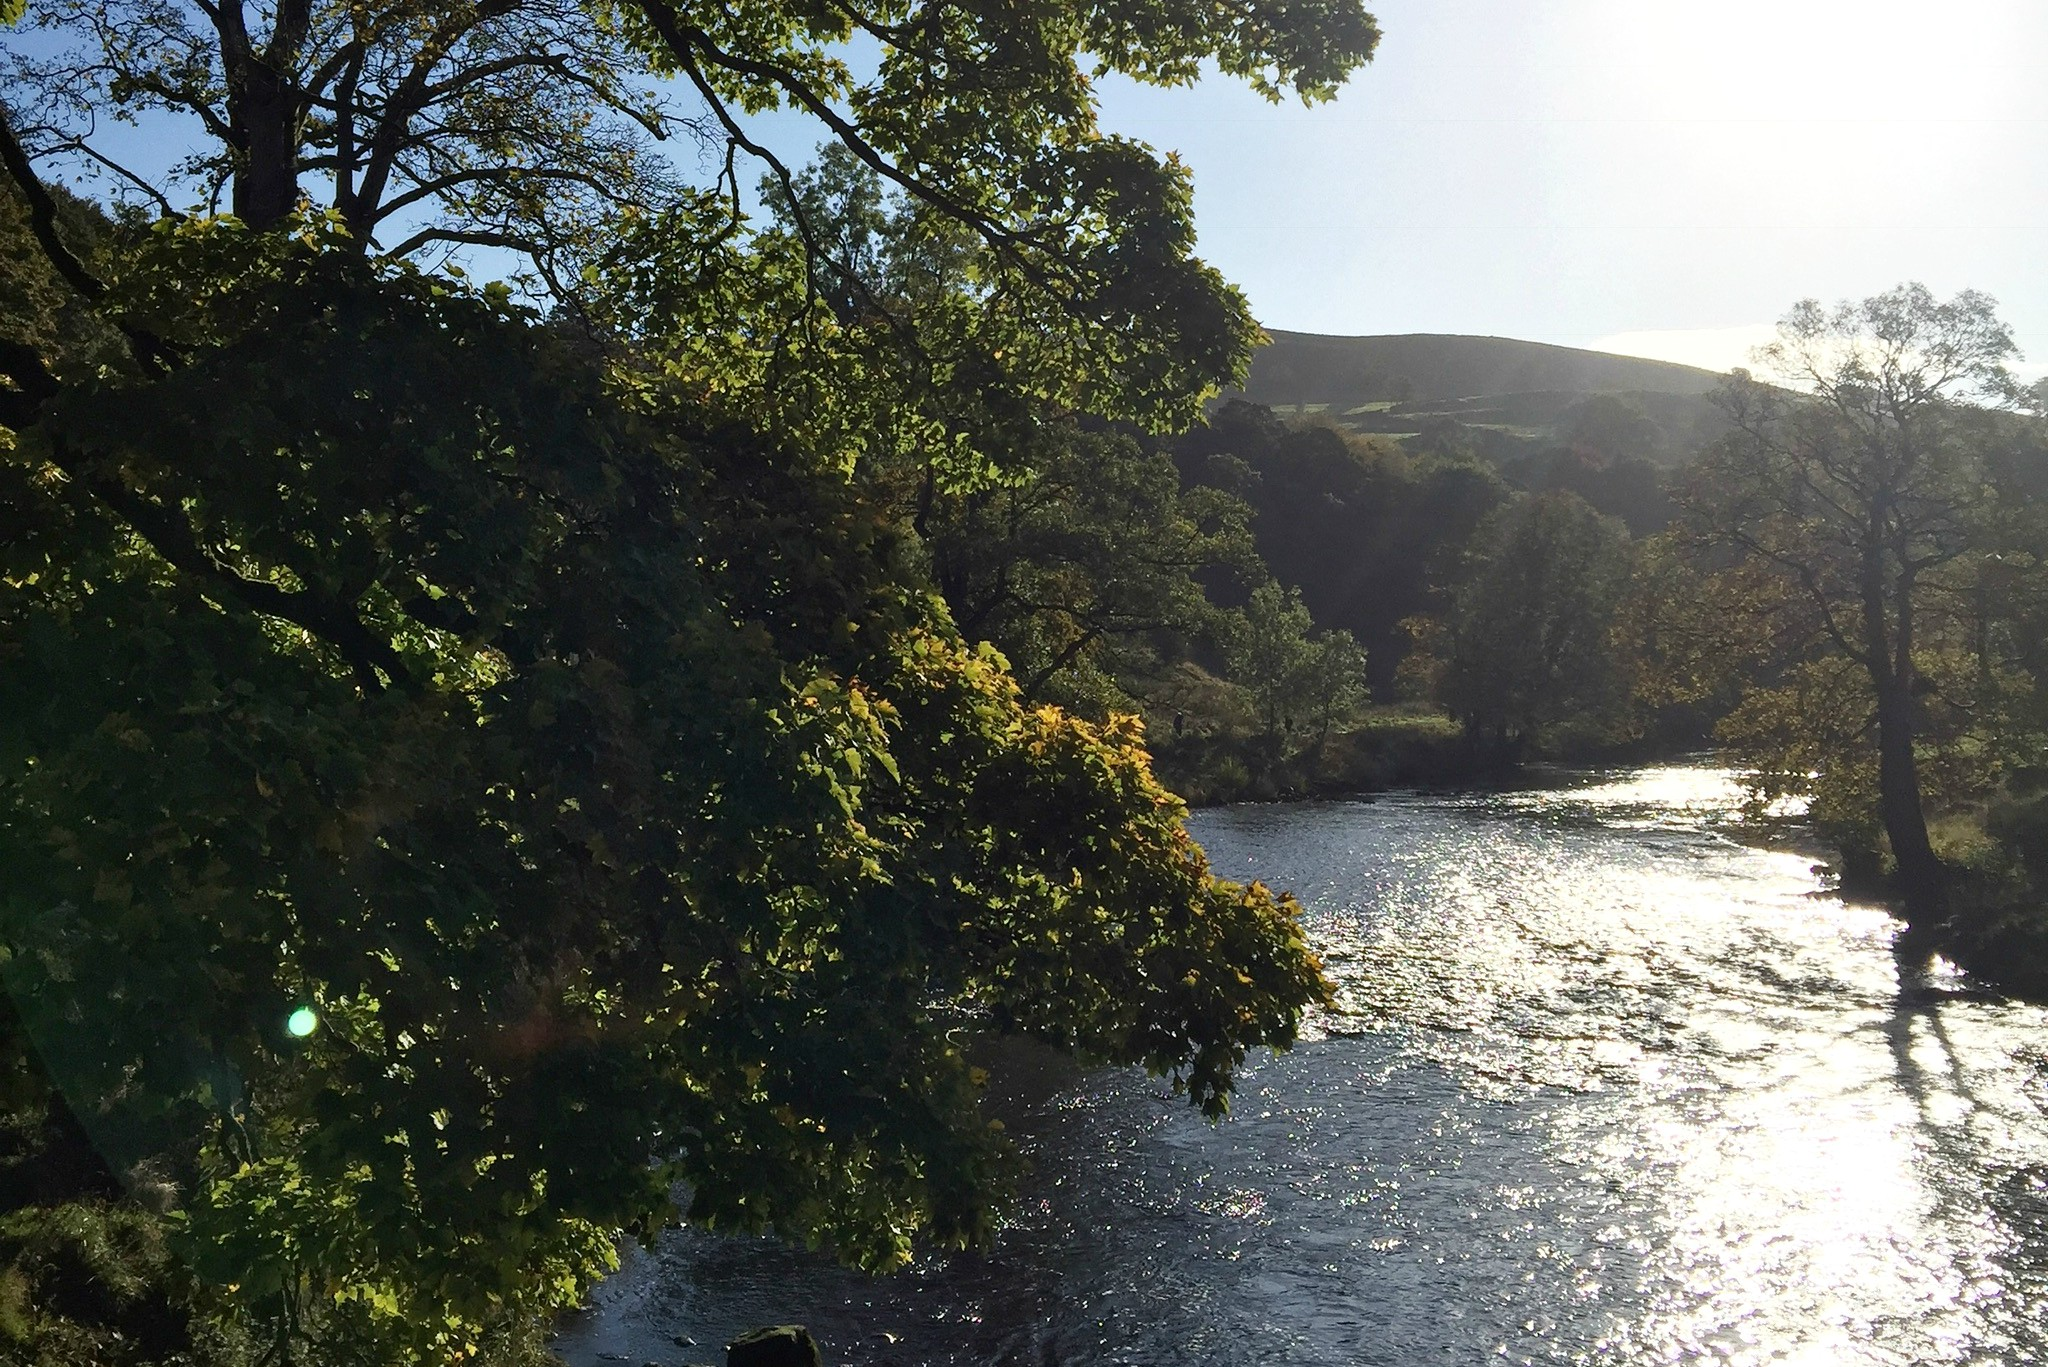 Looking over the river at Bolton Abbey